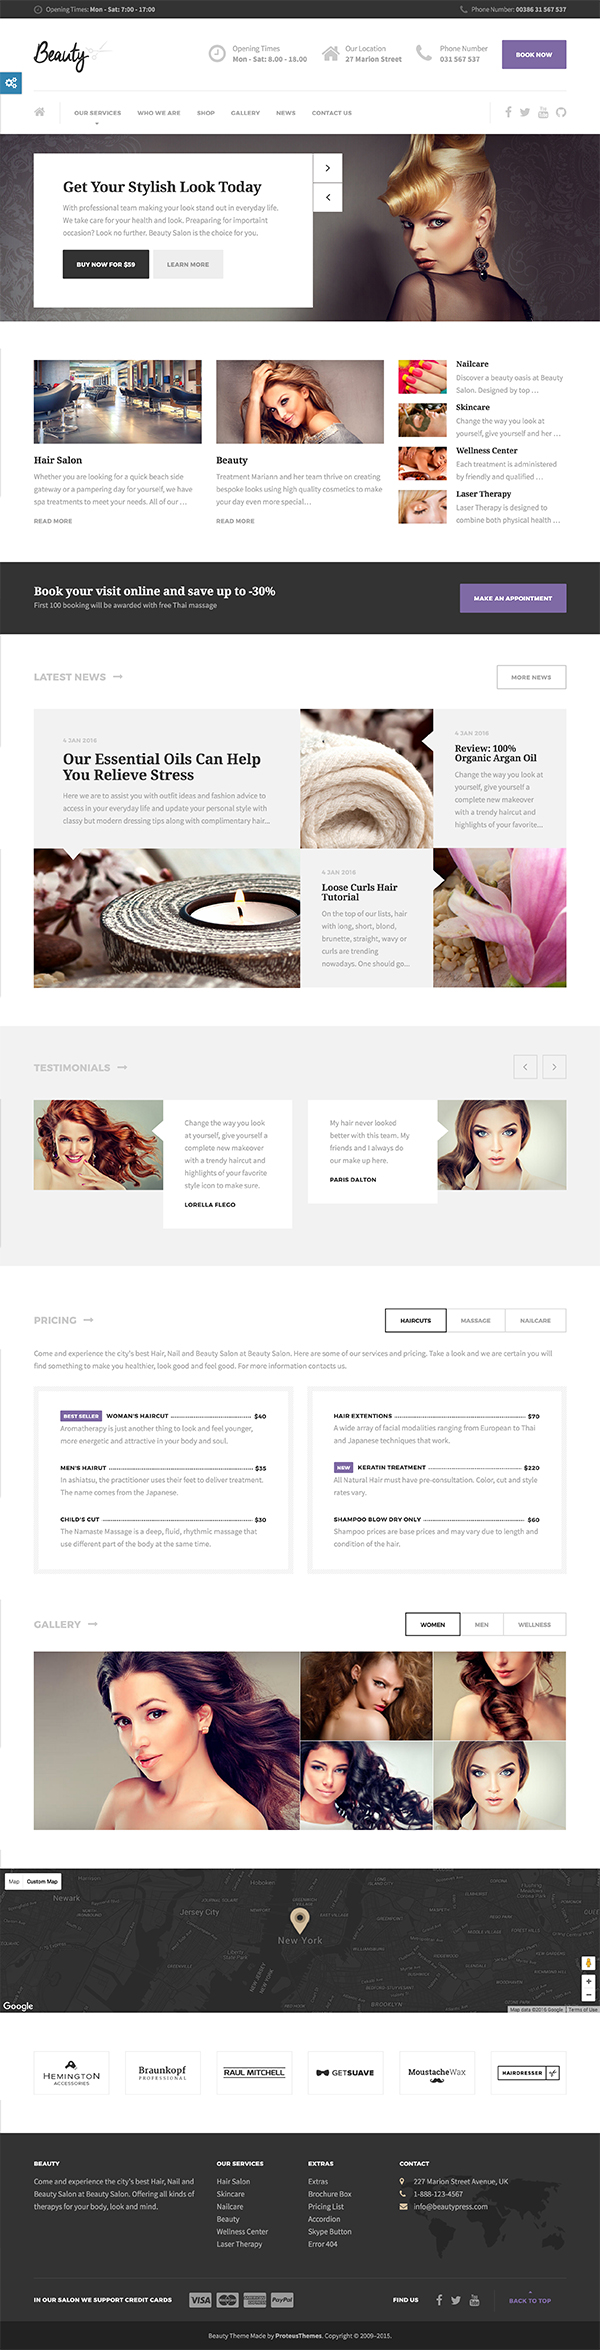 16 Beauty - Hair Salon, Nail, Spa, Fashion WP Theme